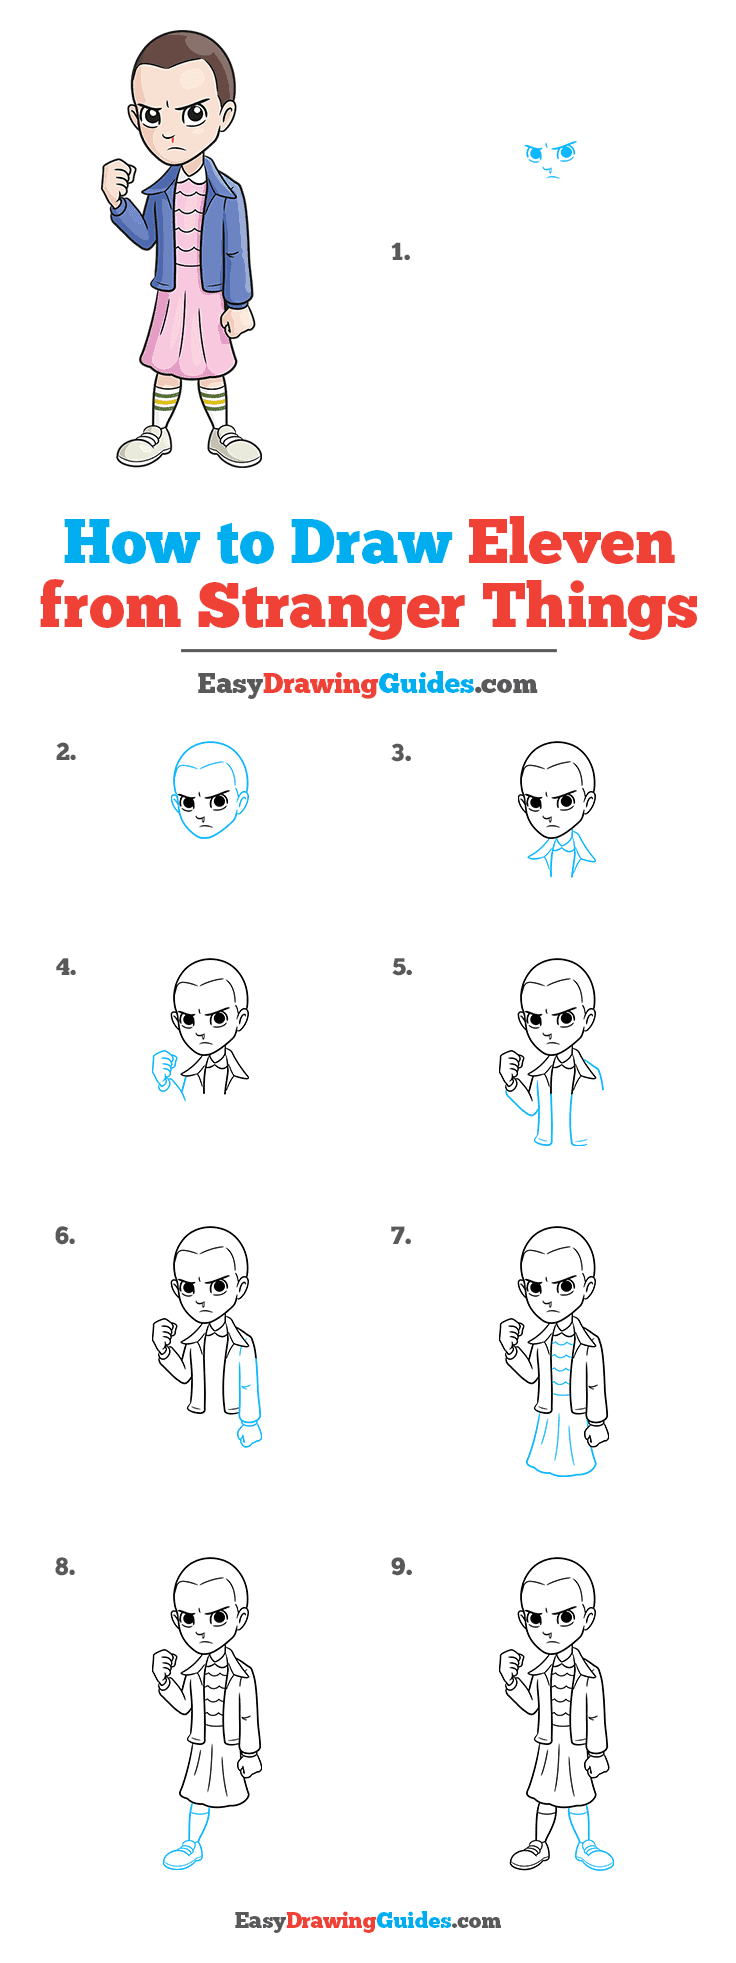 How to Draw Eleven from Stranger Things Step by Step Tutorial Image